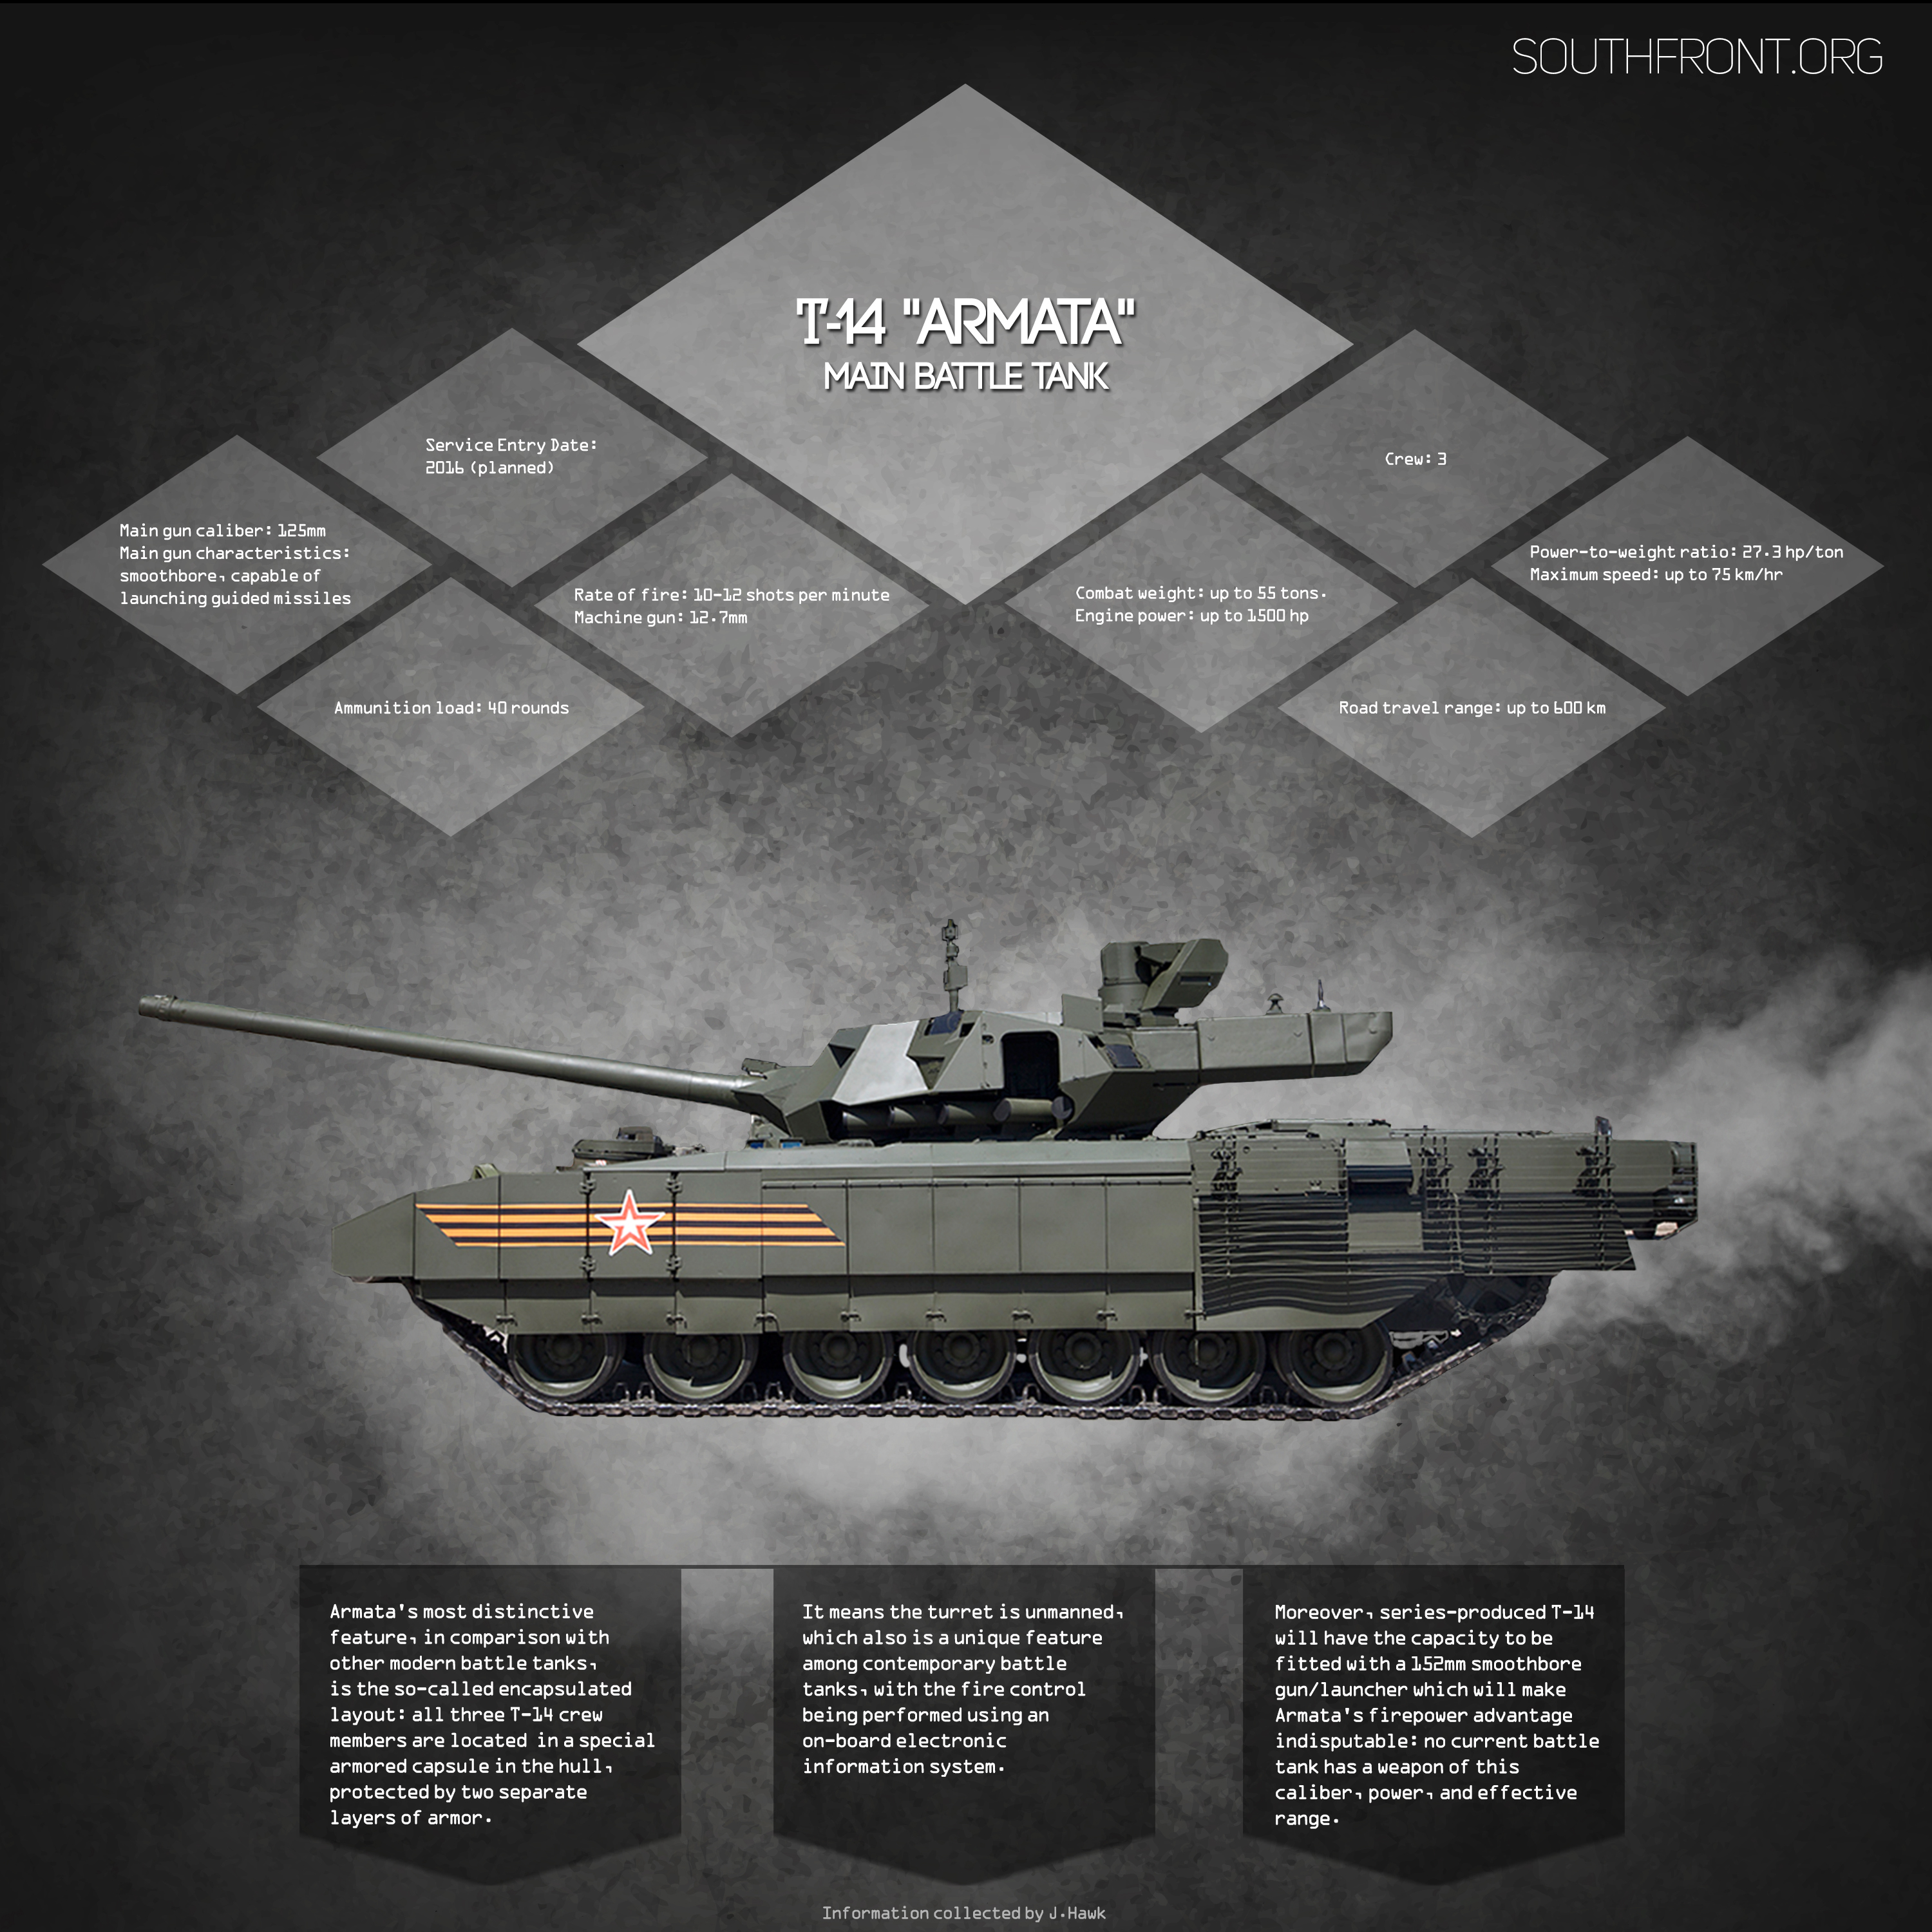 Russia's State Of The Art Battle Tank T-14 Armata Was Tested In Syria